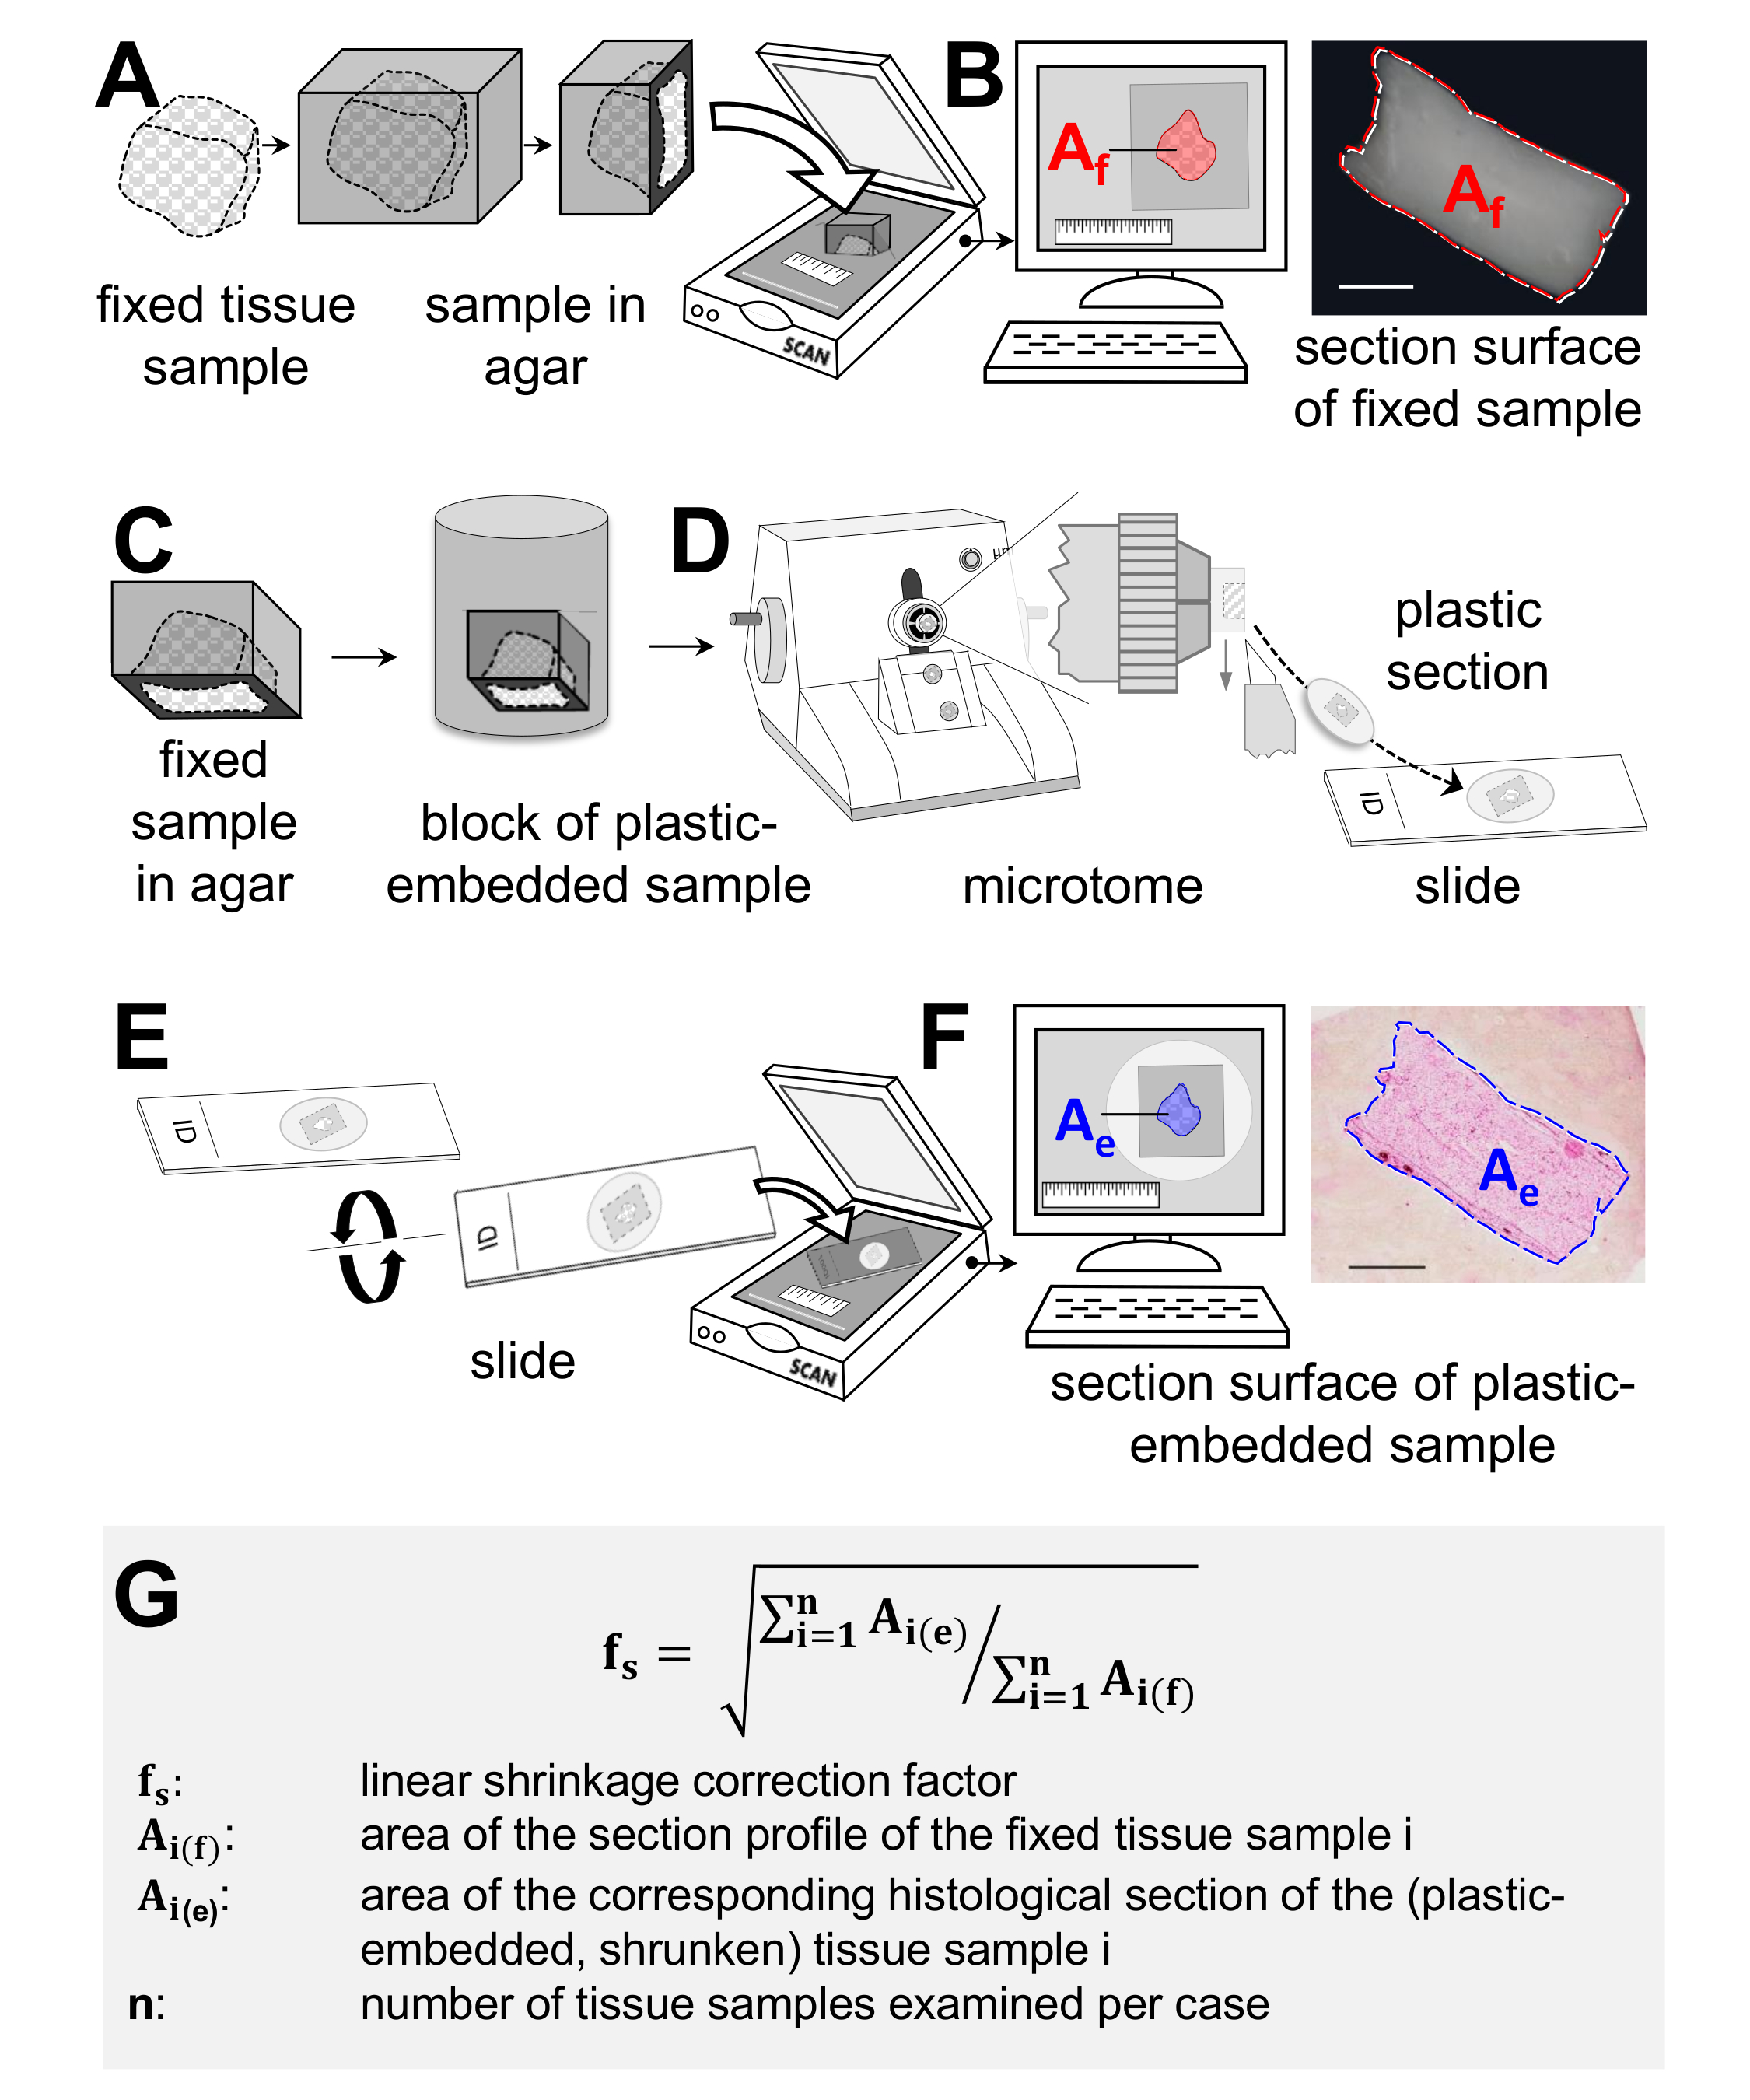 Sampling Strategies and Processing of Biobank Tissue Samples